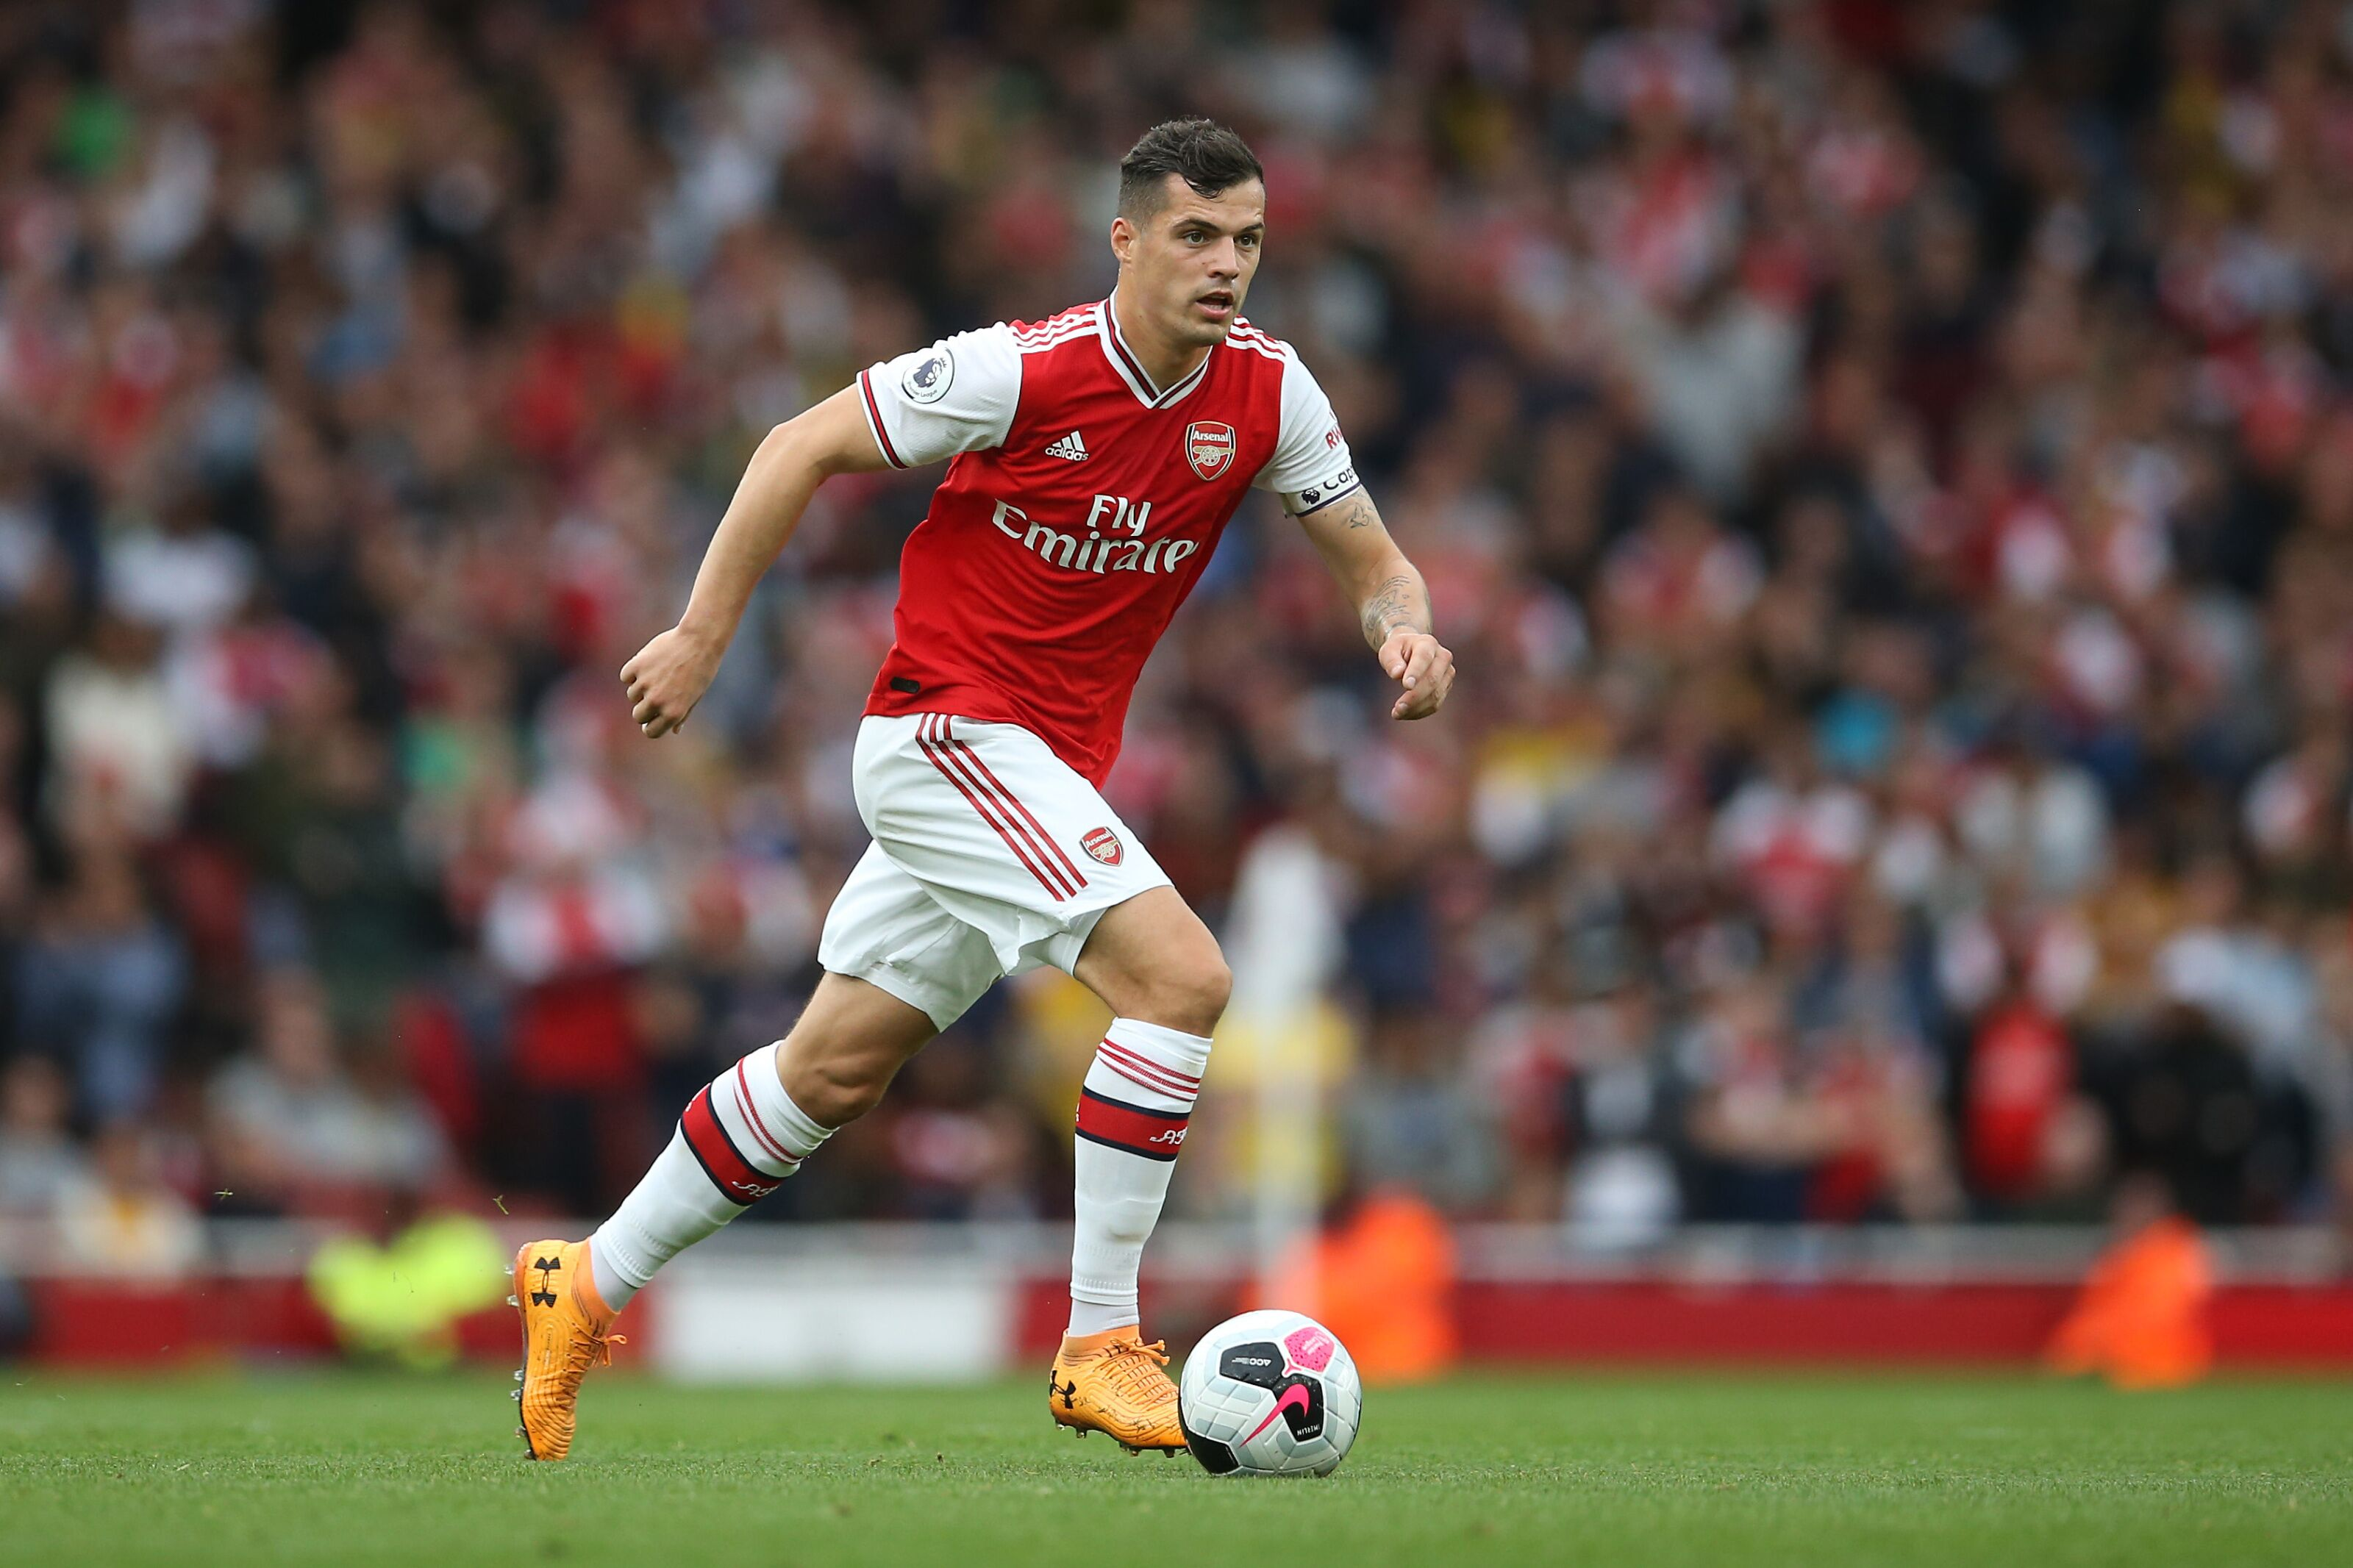 Is Granit Xhaka really the right choice for Arsenal captain?